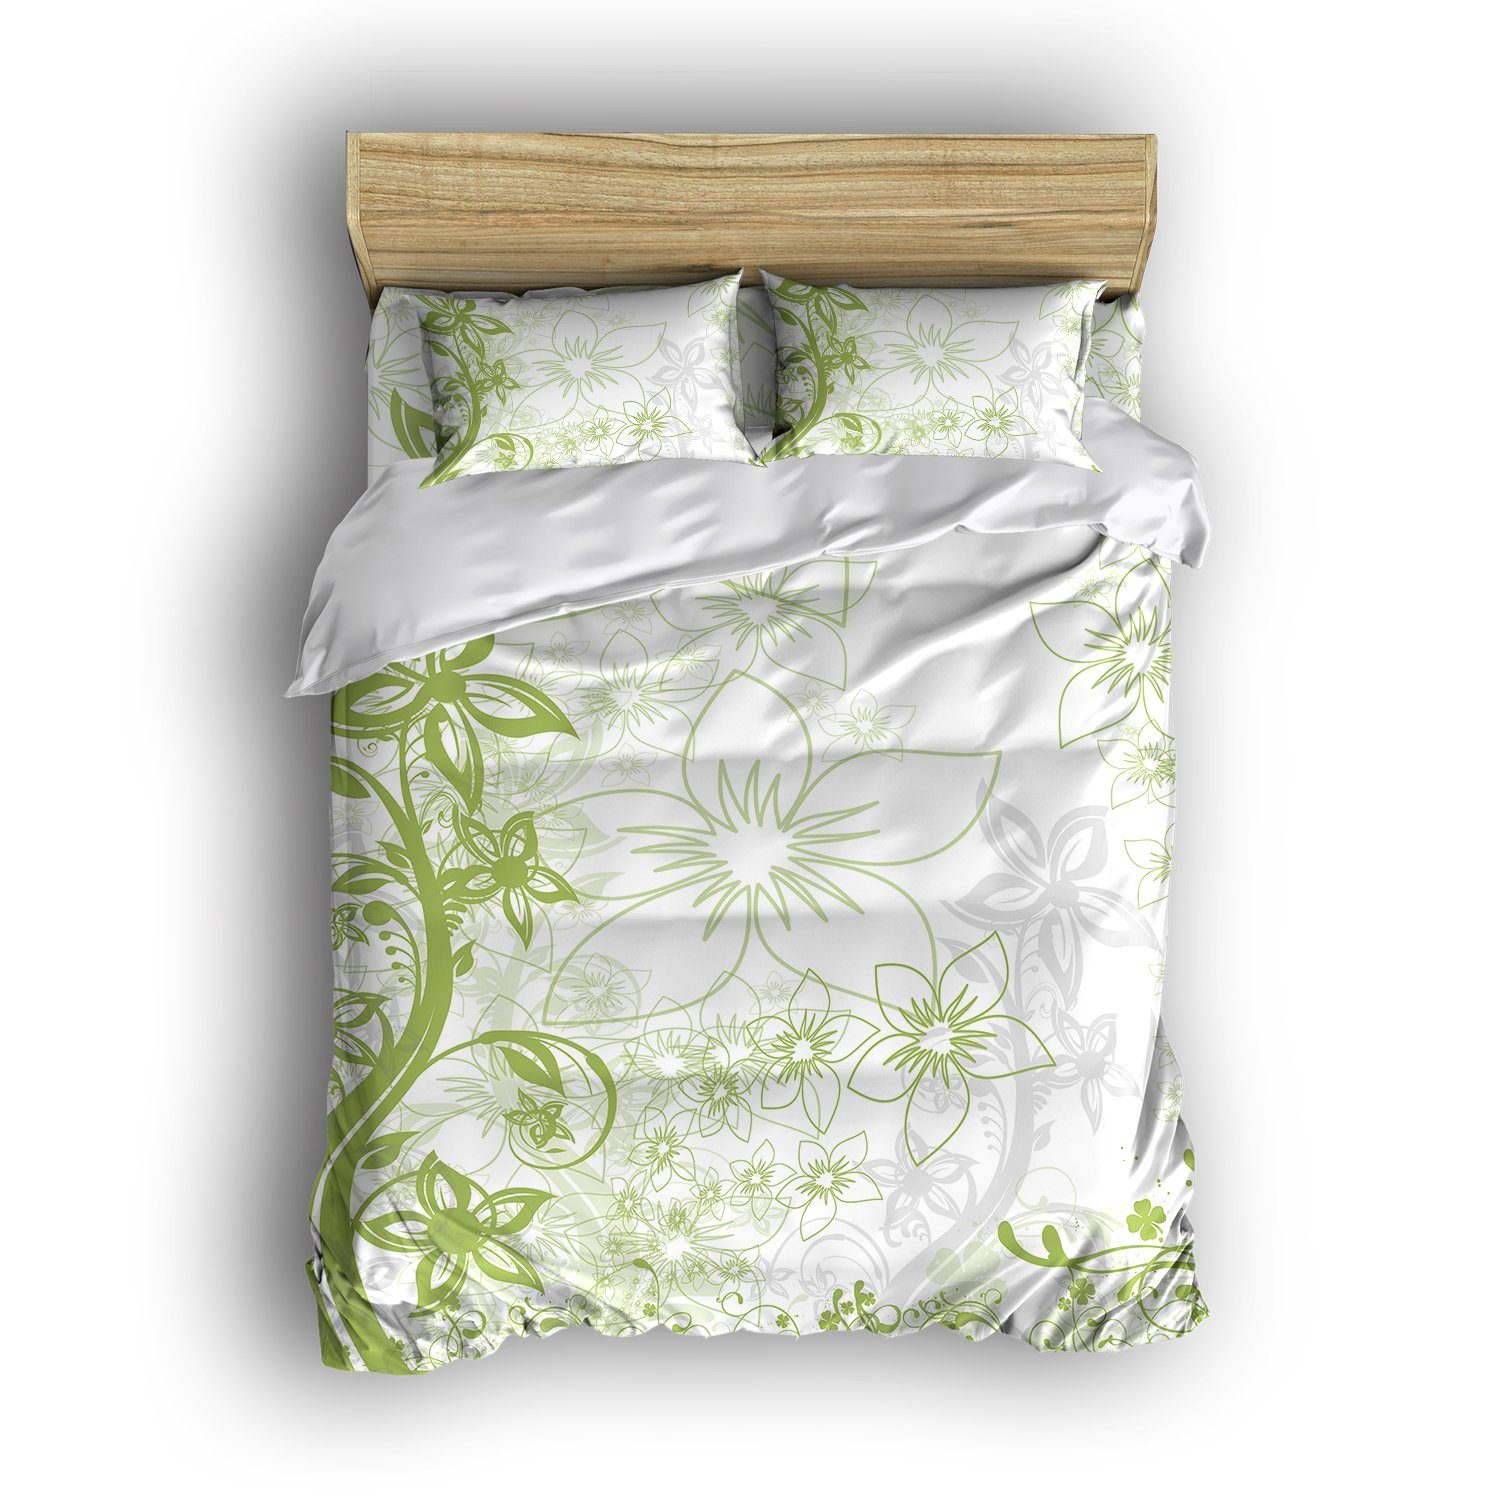 Modern-Home Bedding Sets 4 Piece Simple Vines Green Flowers Printed Bed Set Reversible Comforter Set Super Soft 1 Flat Sheet 1 Duvet Cover and 2 Pillow Cases (Twin Size)